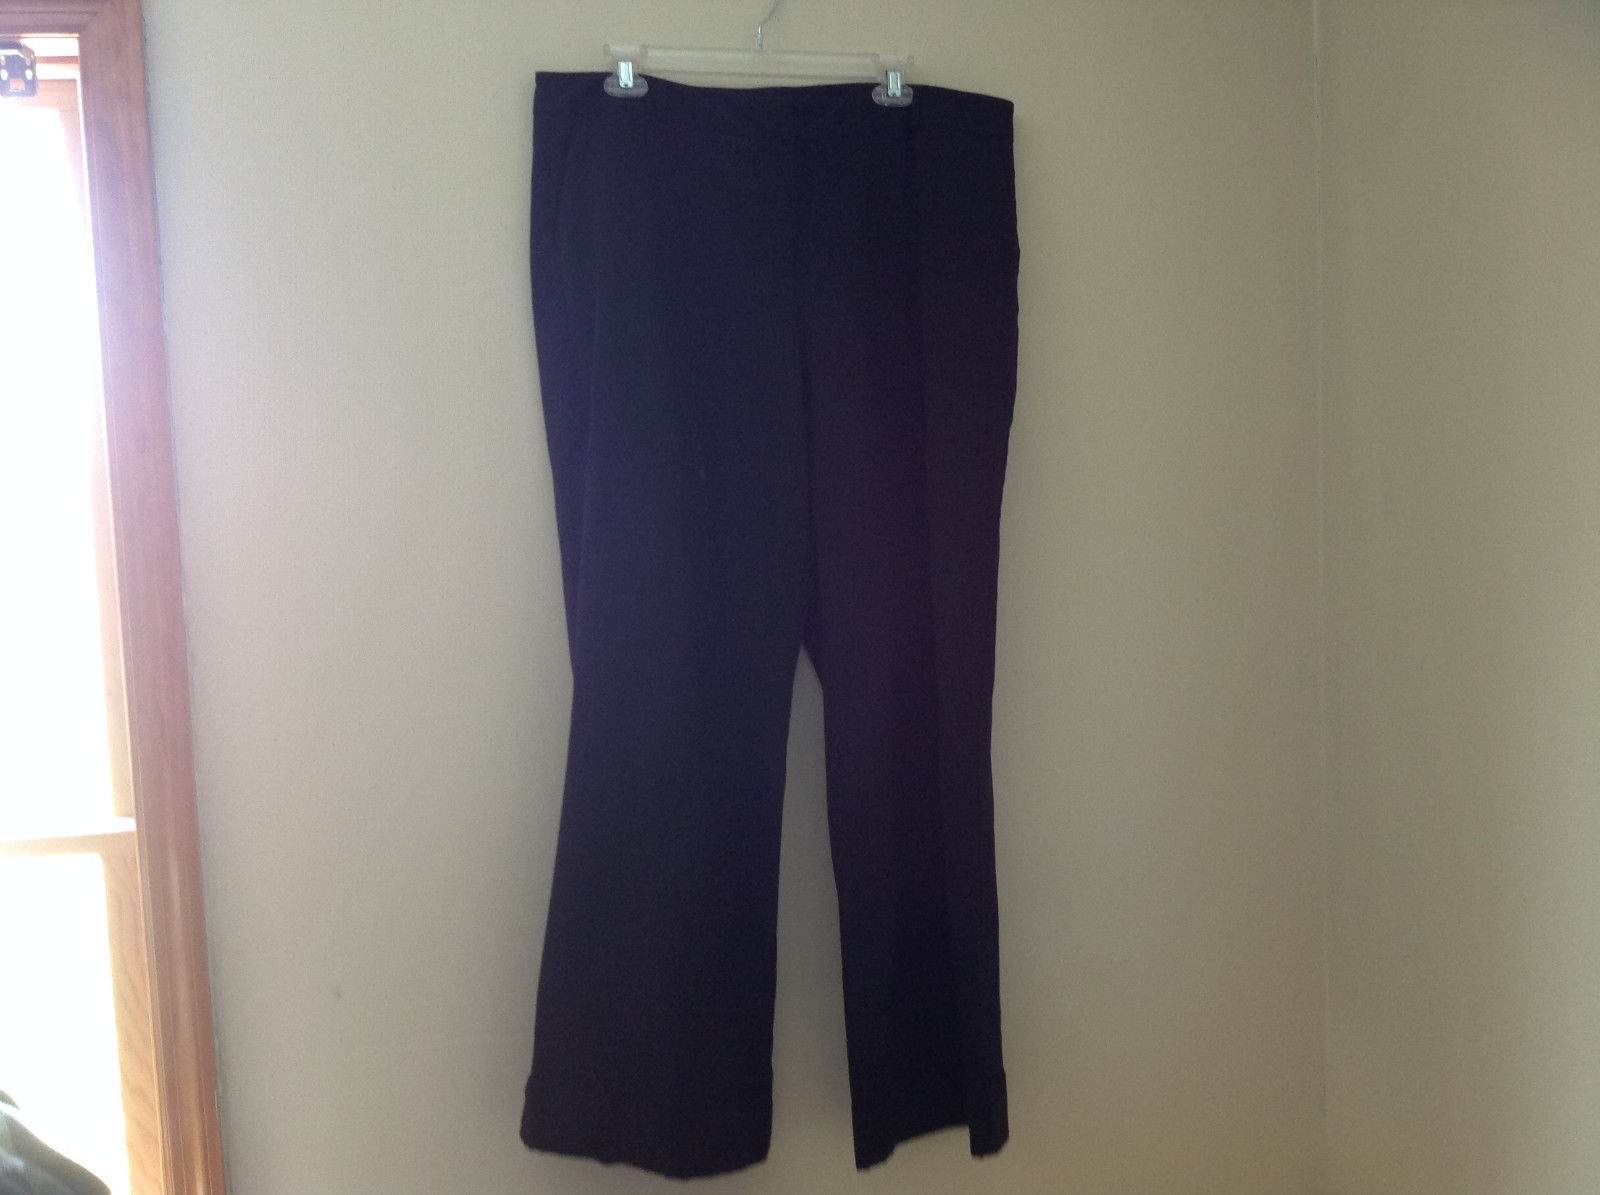 Black Dress Pant by New York Co 4 Pockets Belt Loops Pant Legs Cuffed Size 16